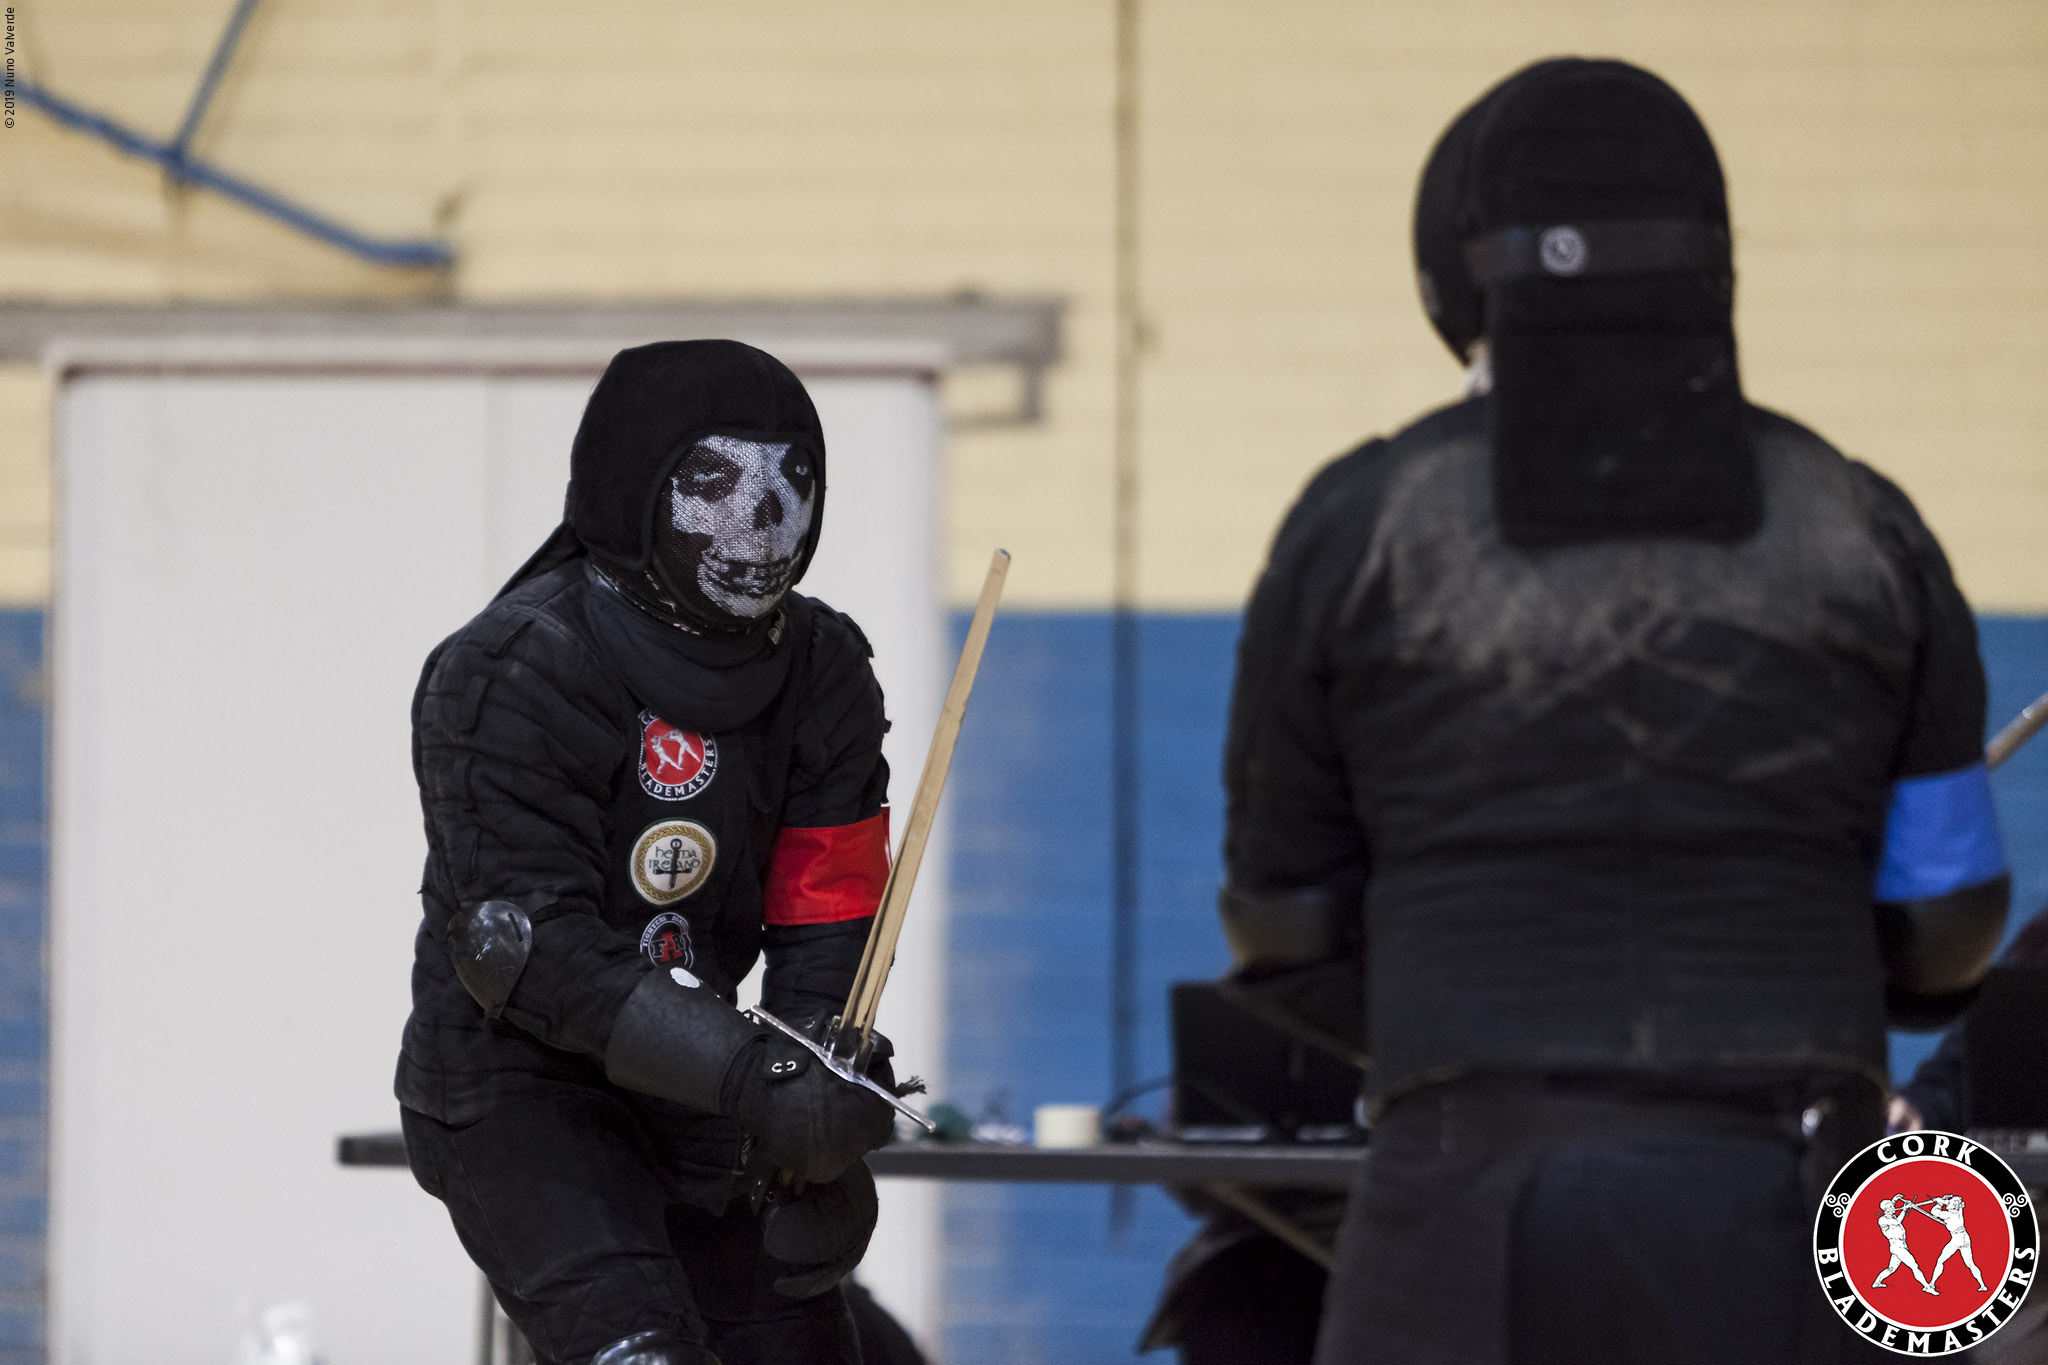 2019_03_30 Blademasters Cup_0399